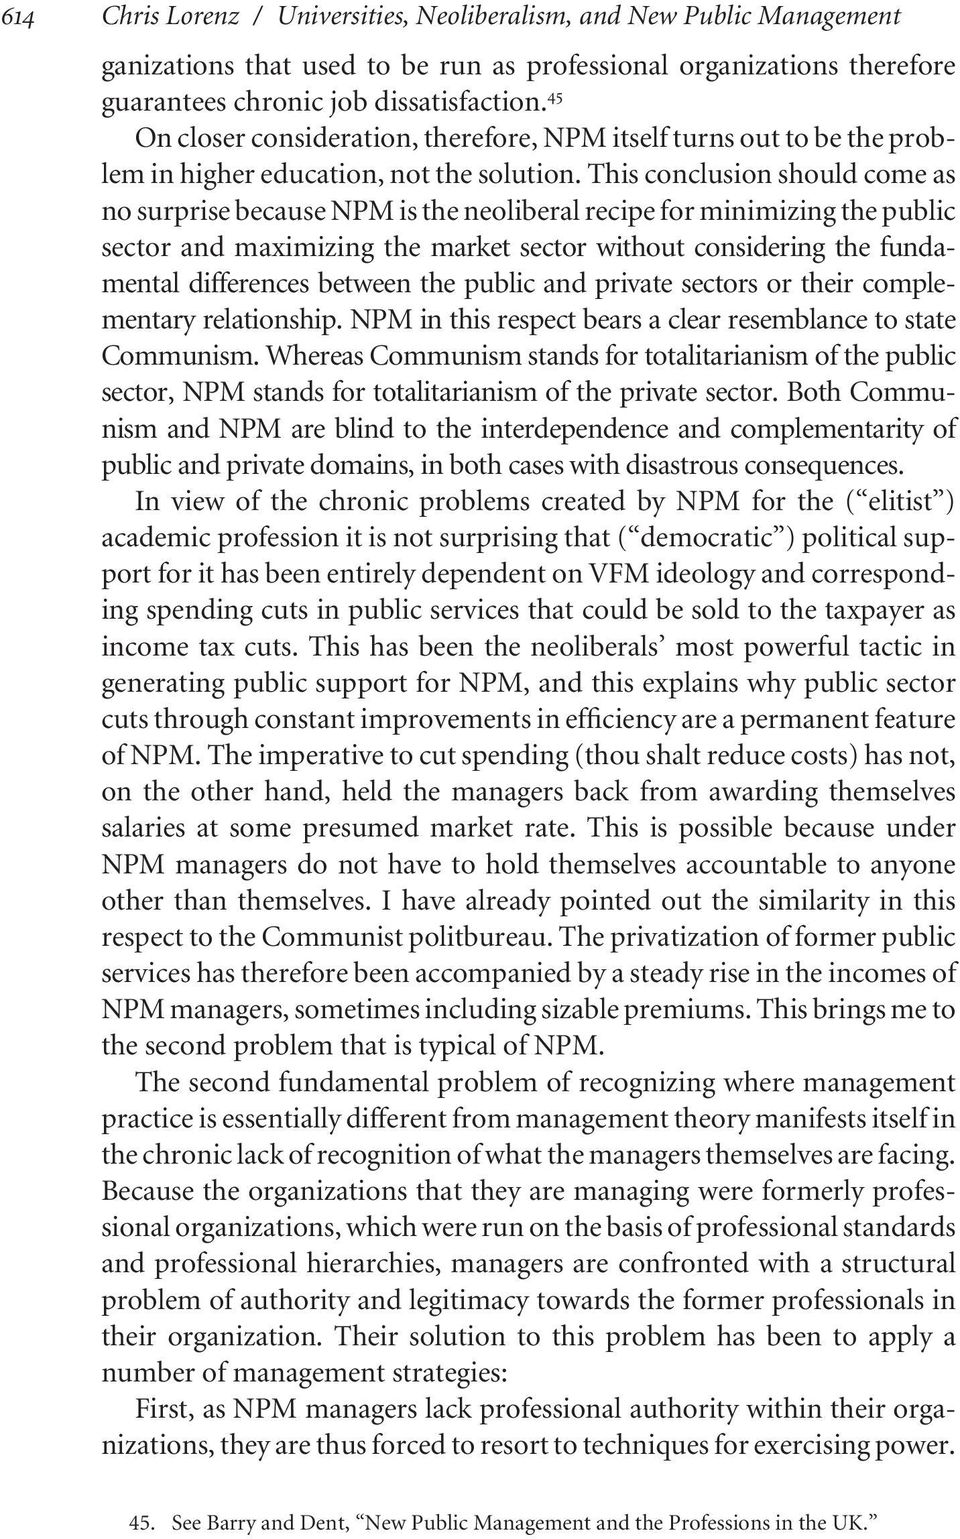 This conclusion should come as no surprise because NPM is the neoliberal recipe for minimizing the public sector and maximizing the market sector without considering the fundamental differences